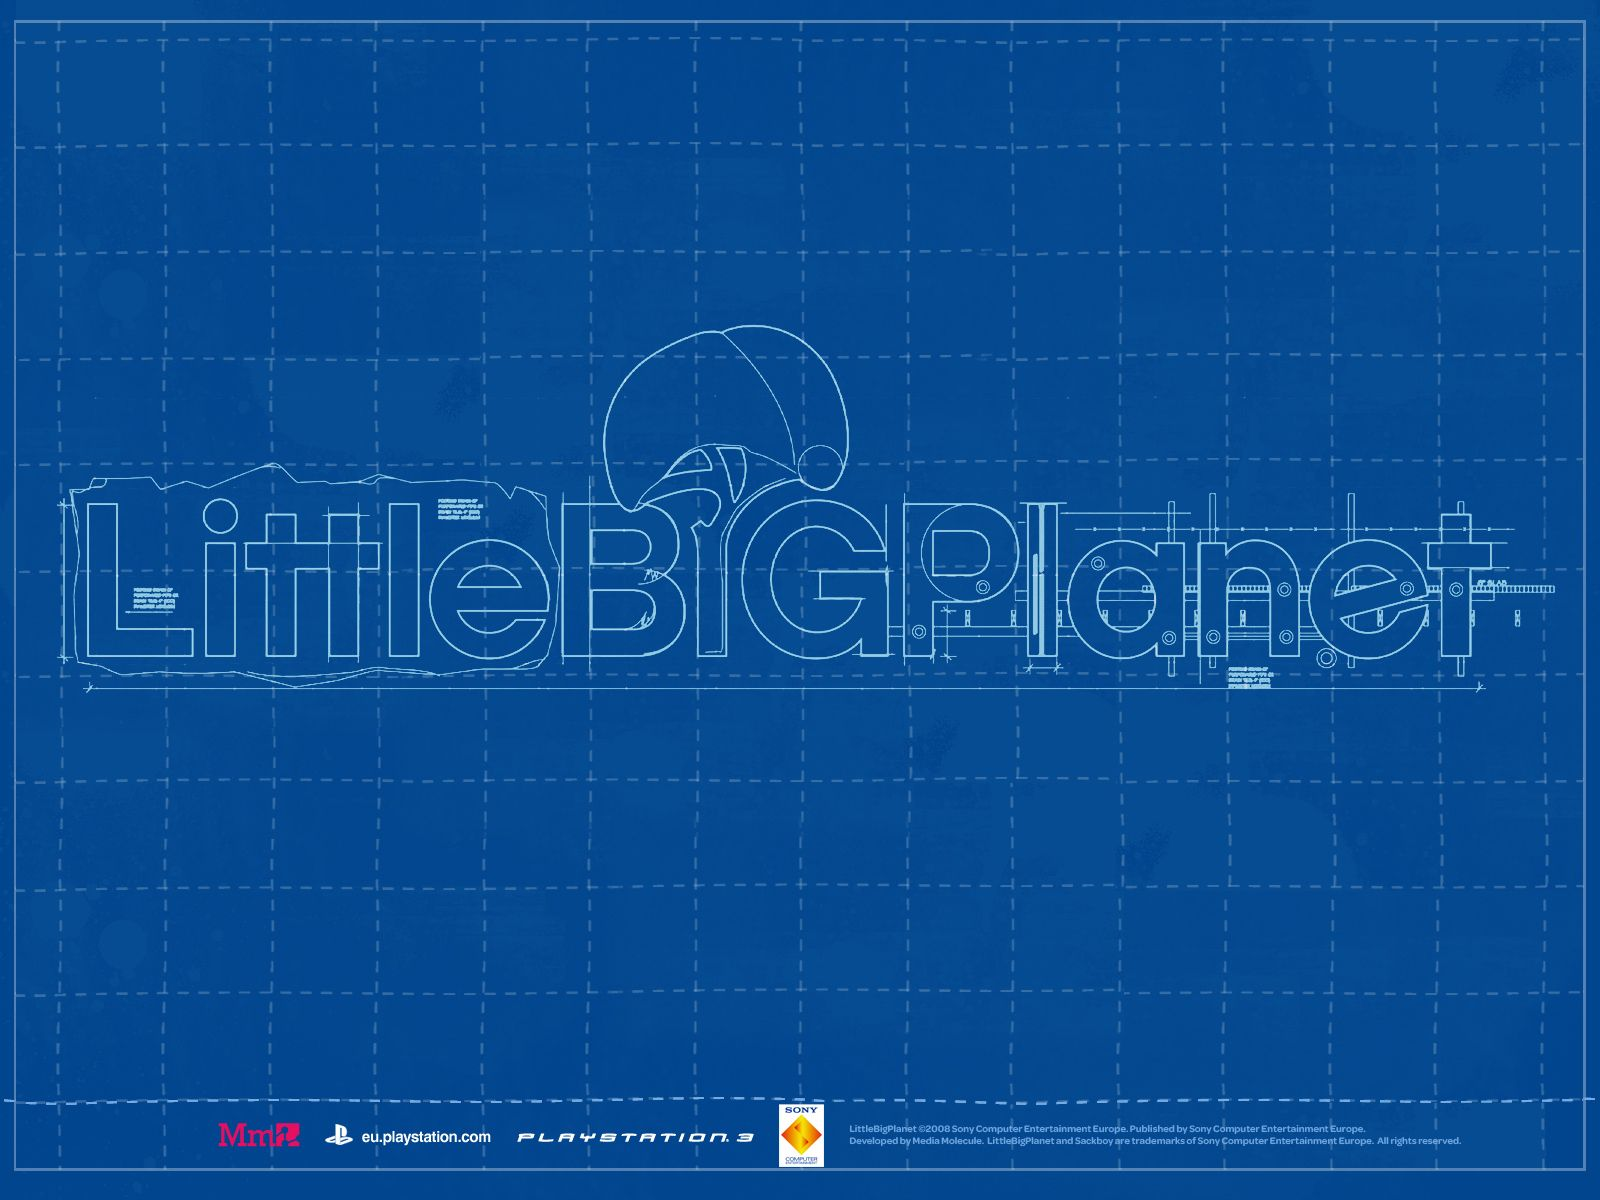 gaming wallpaper blueprint style